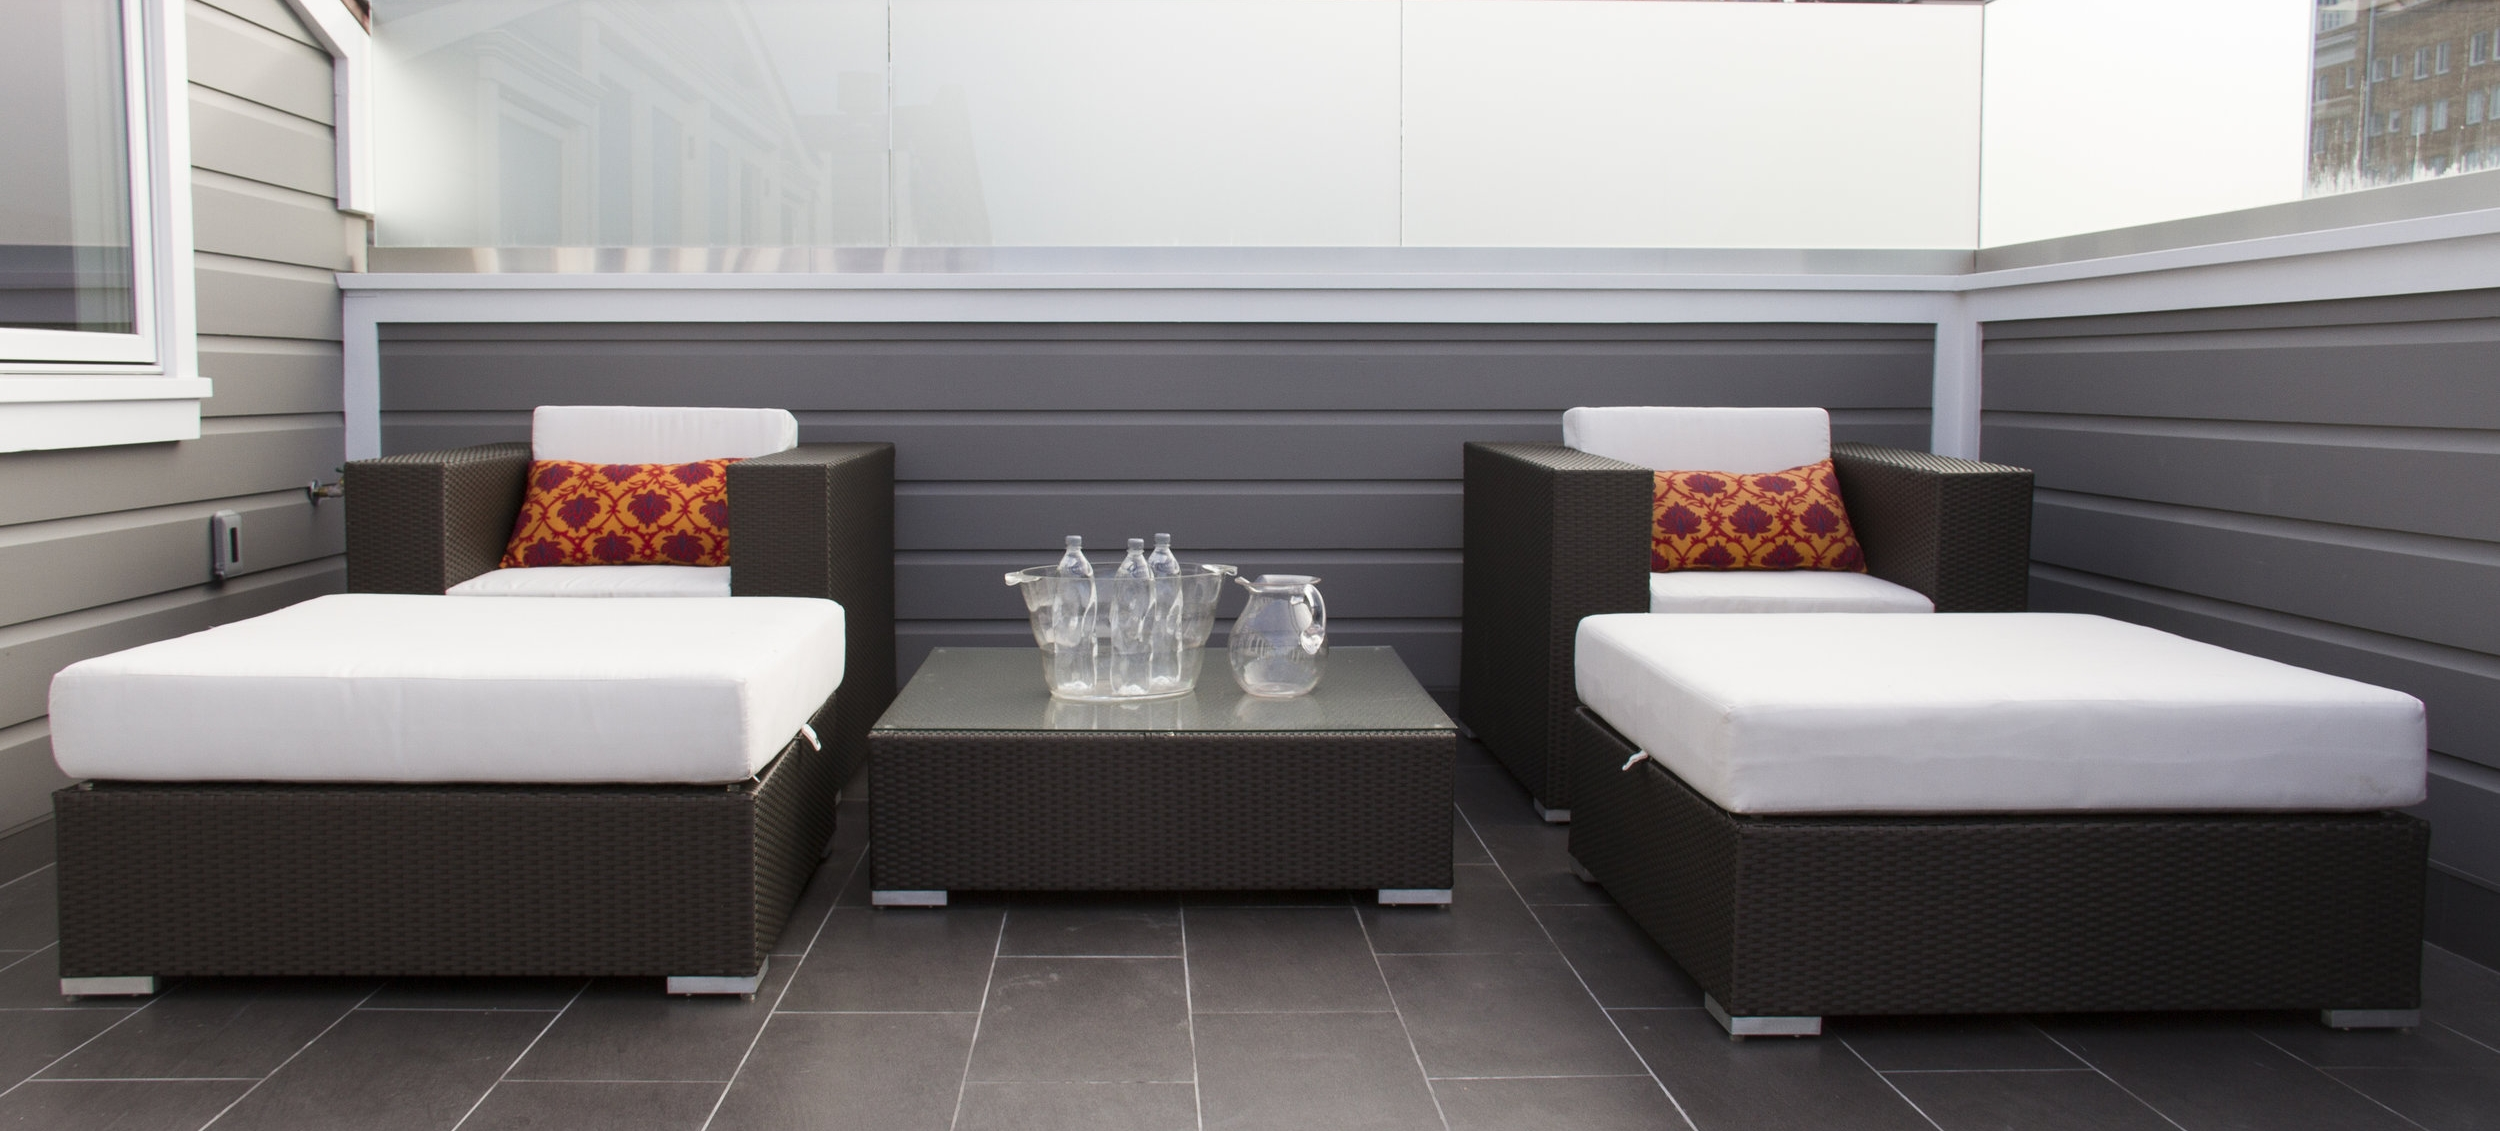 patio, patio furniture, seating, chairs, lounge chairs, modern, white cushions